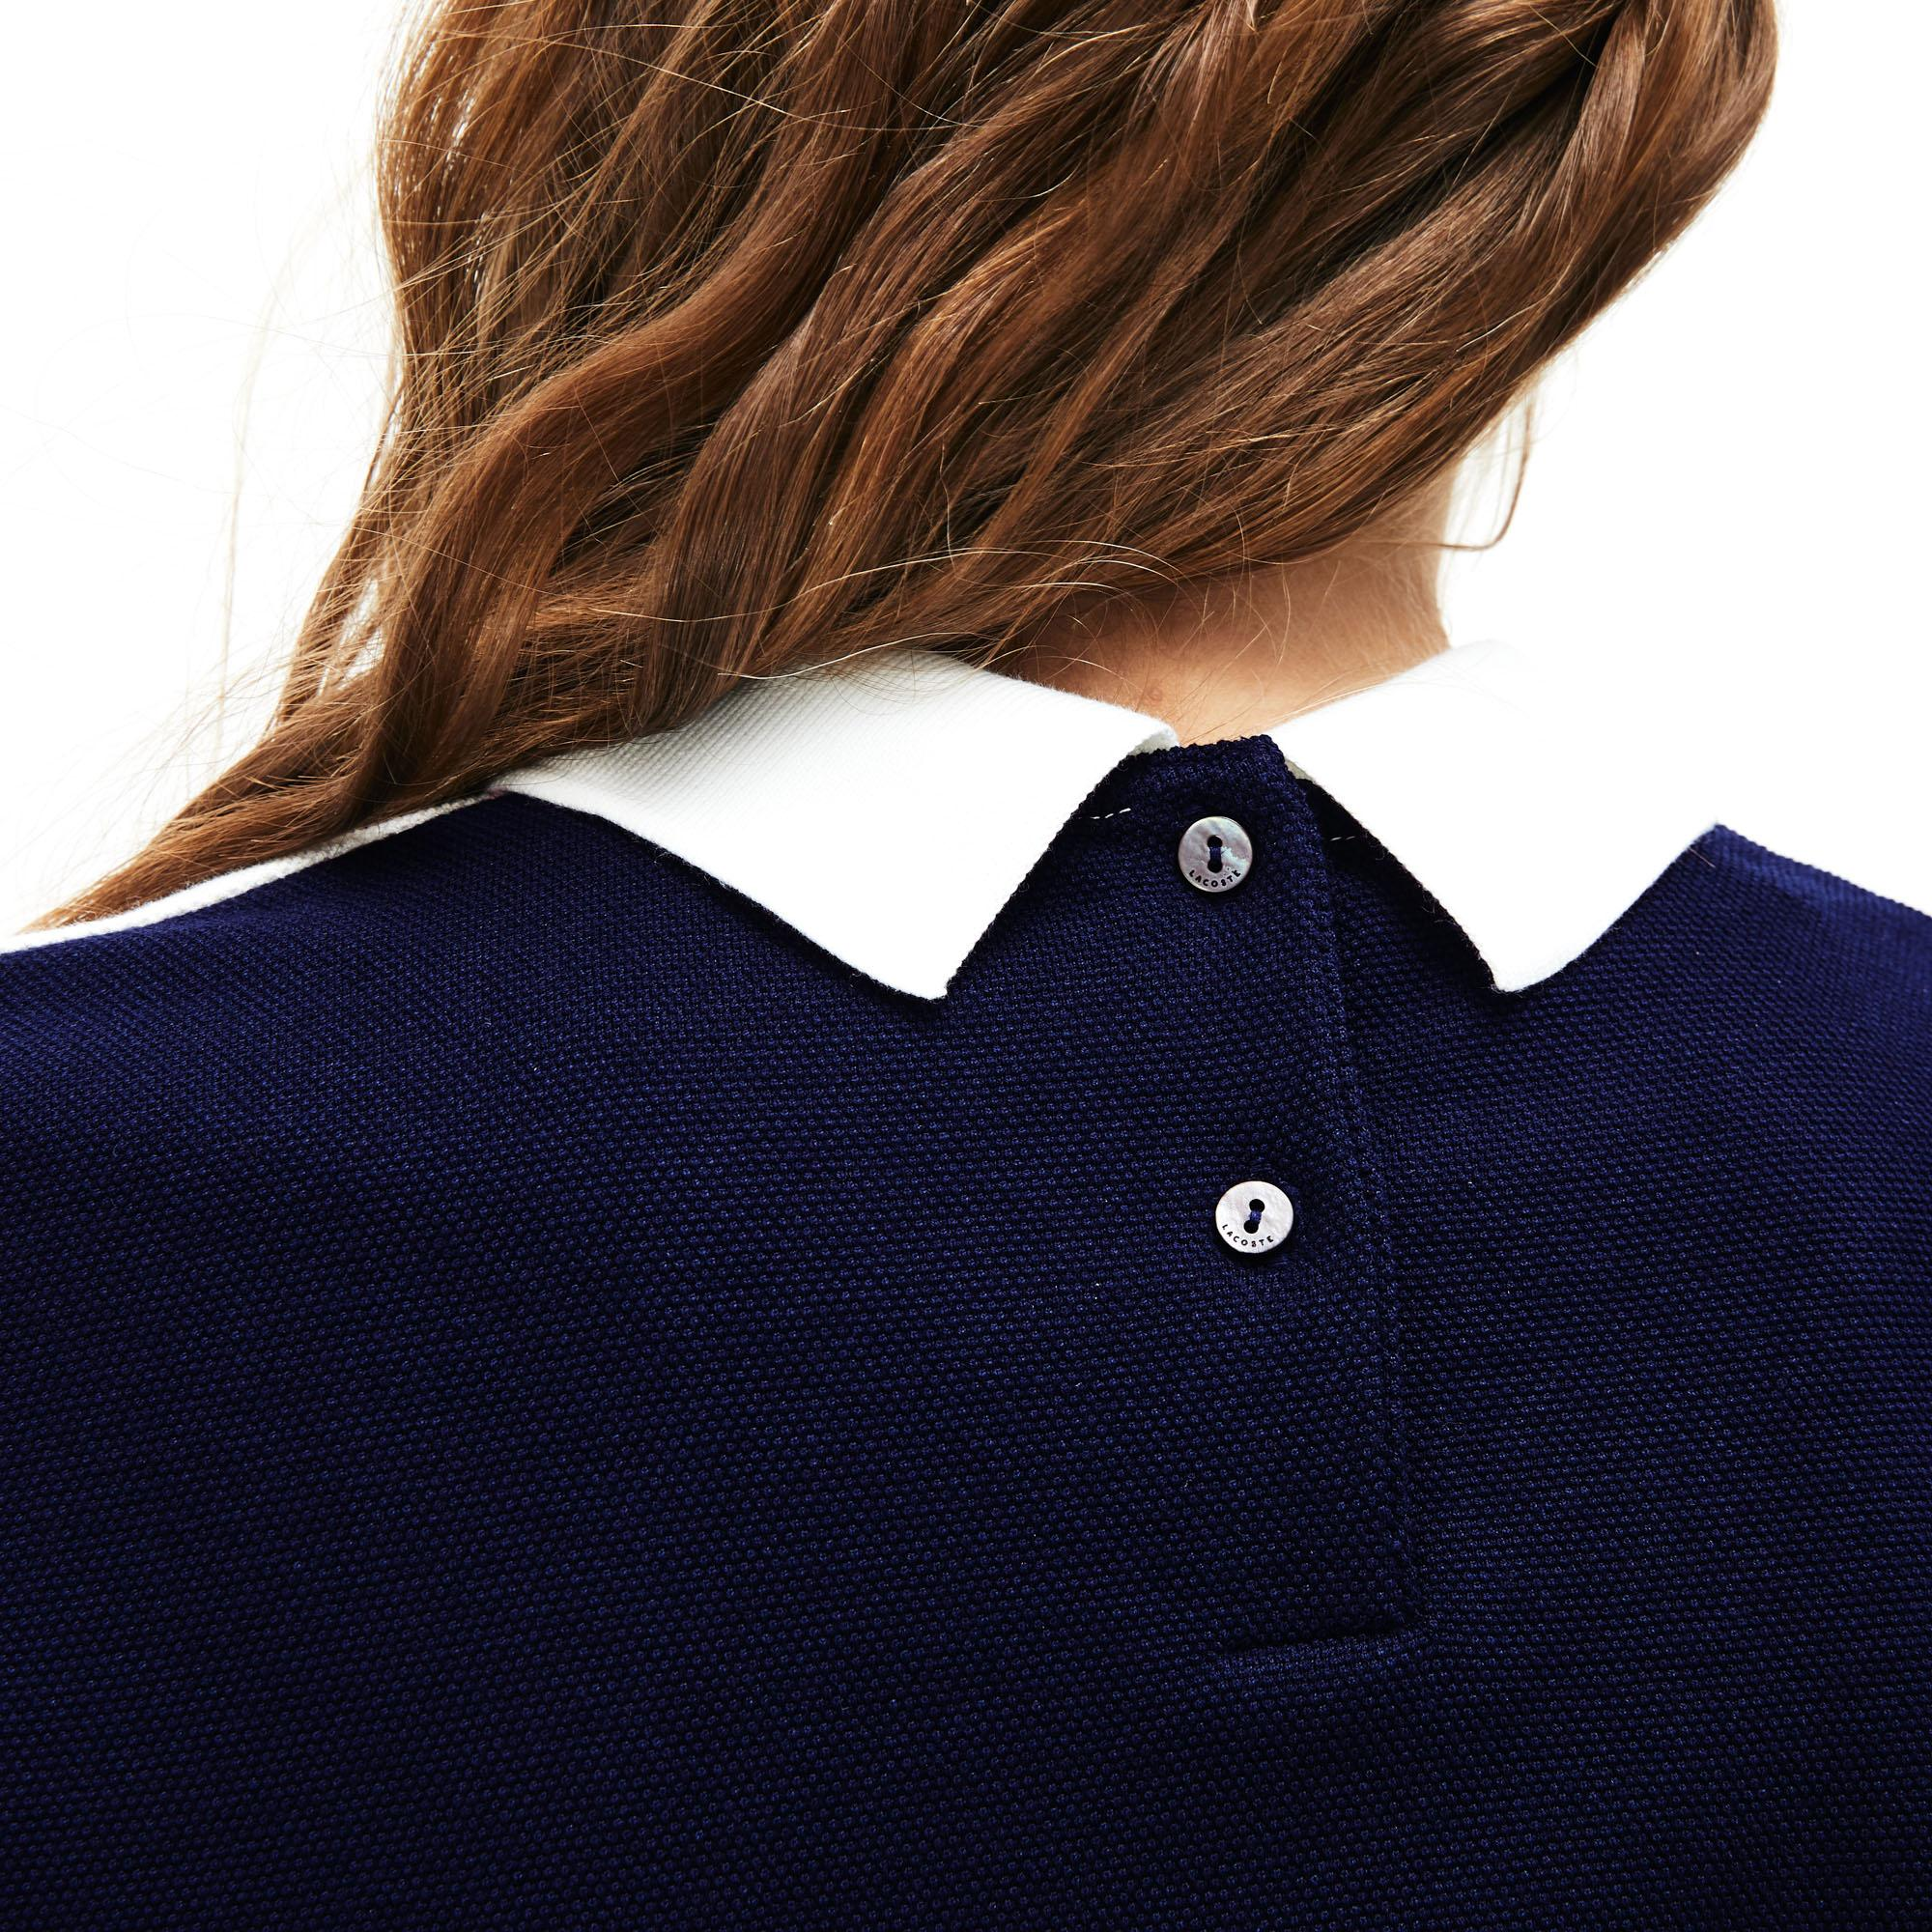 Lacoste Women's Made In France Jacquard Patterned Cotton Piqué Polo